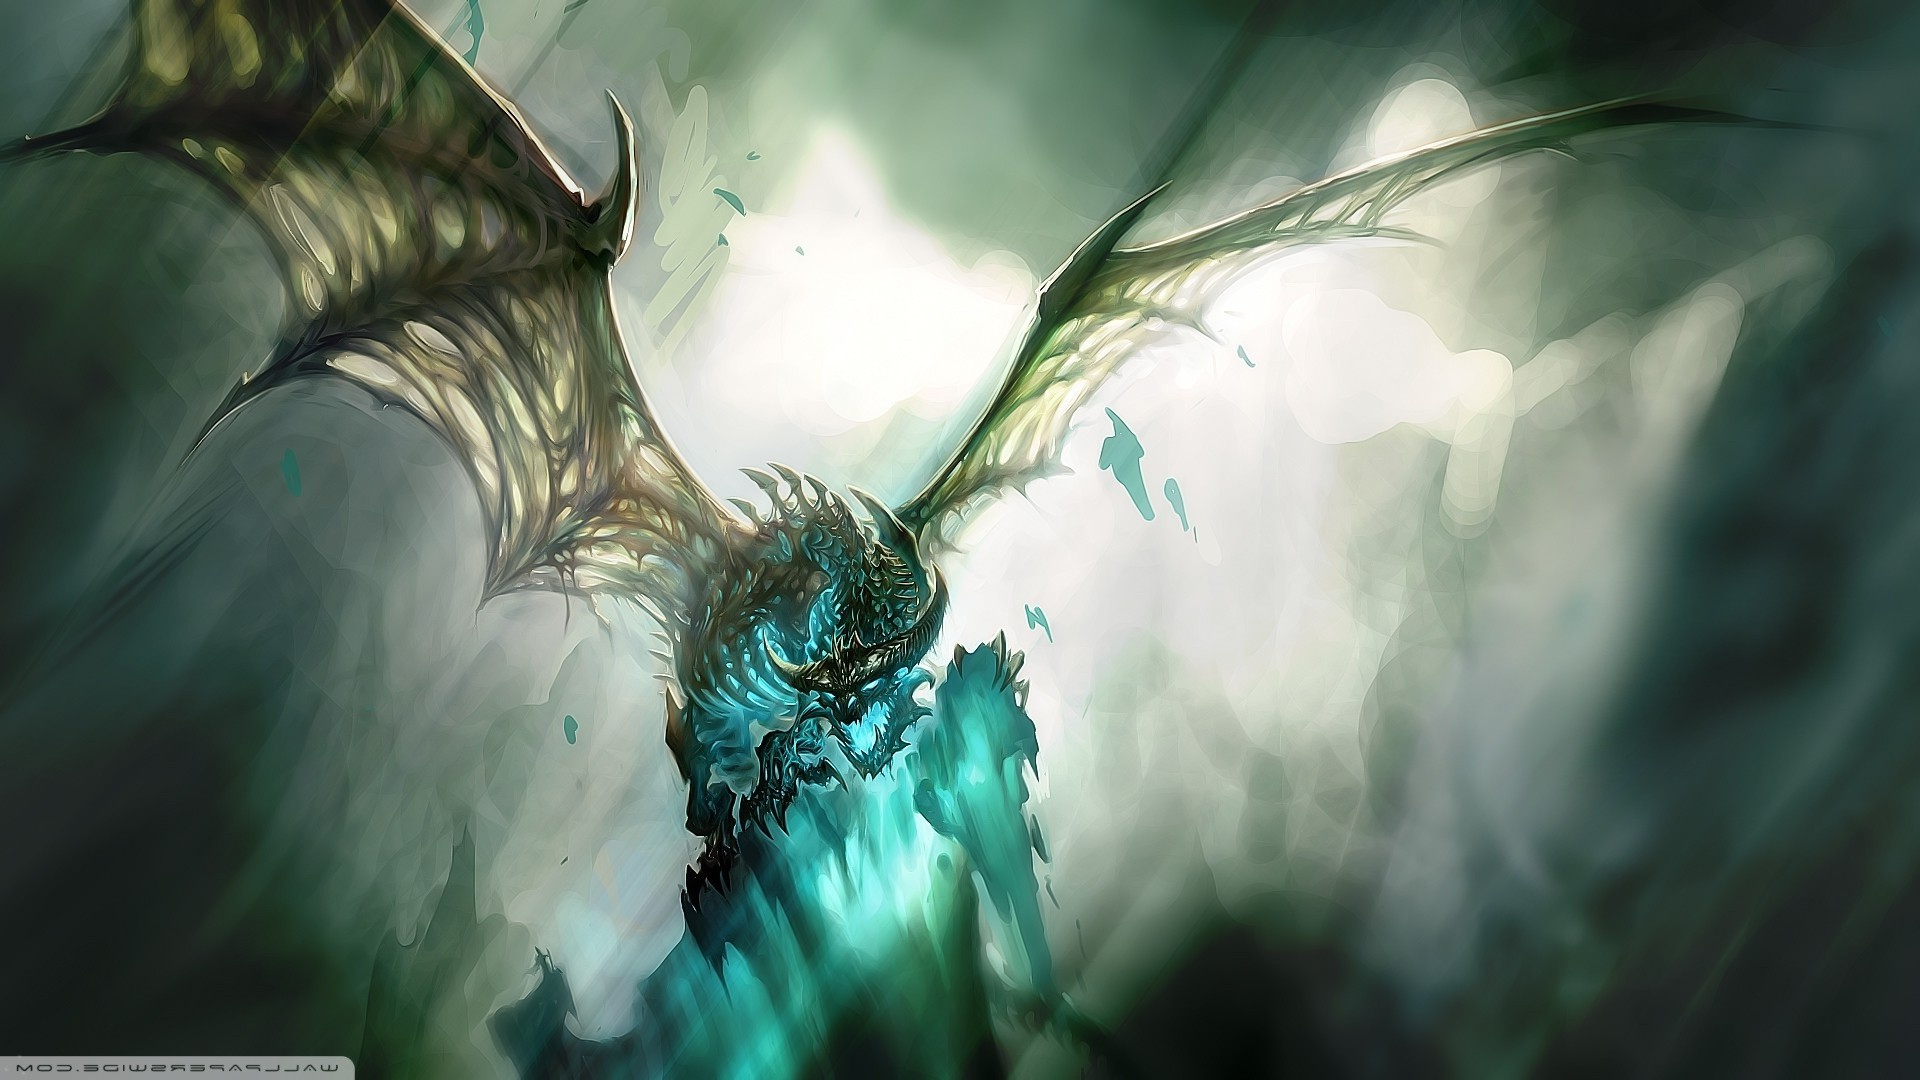 Lich-King-World-of-Warcraft-Wrath-of-the-Lich-King-wallpaper-wp3408102